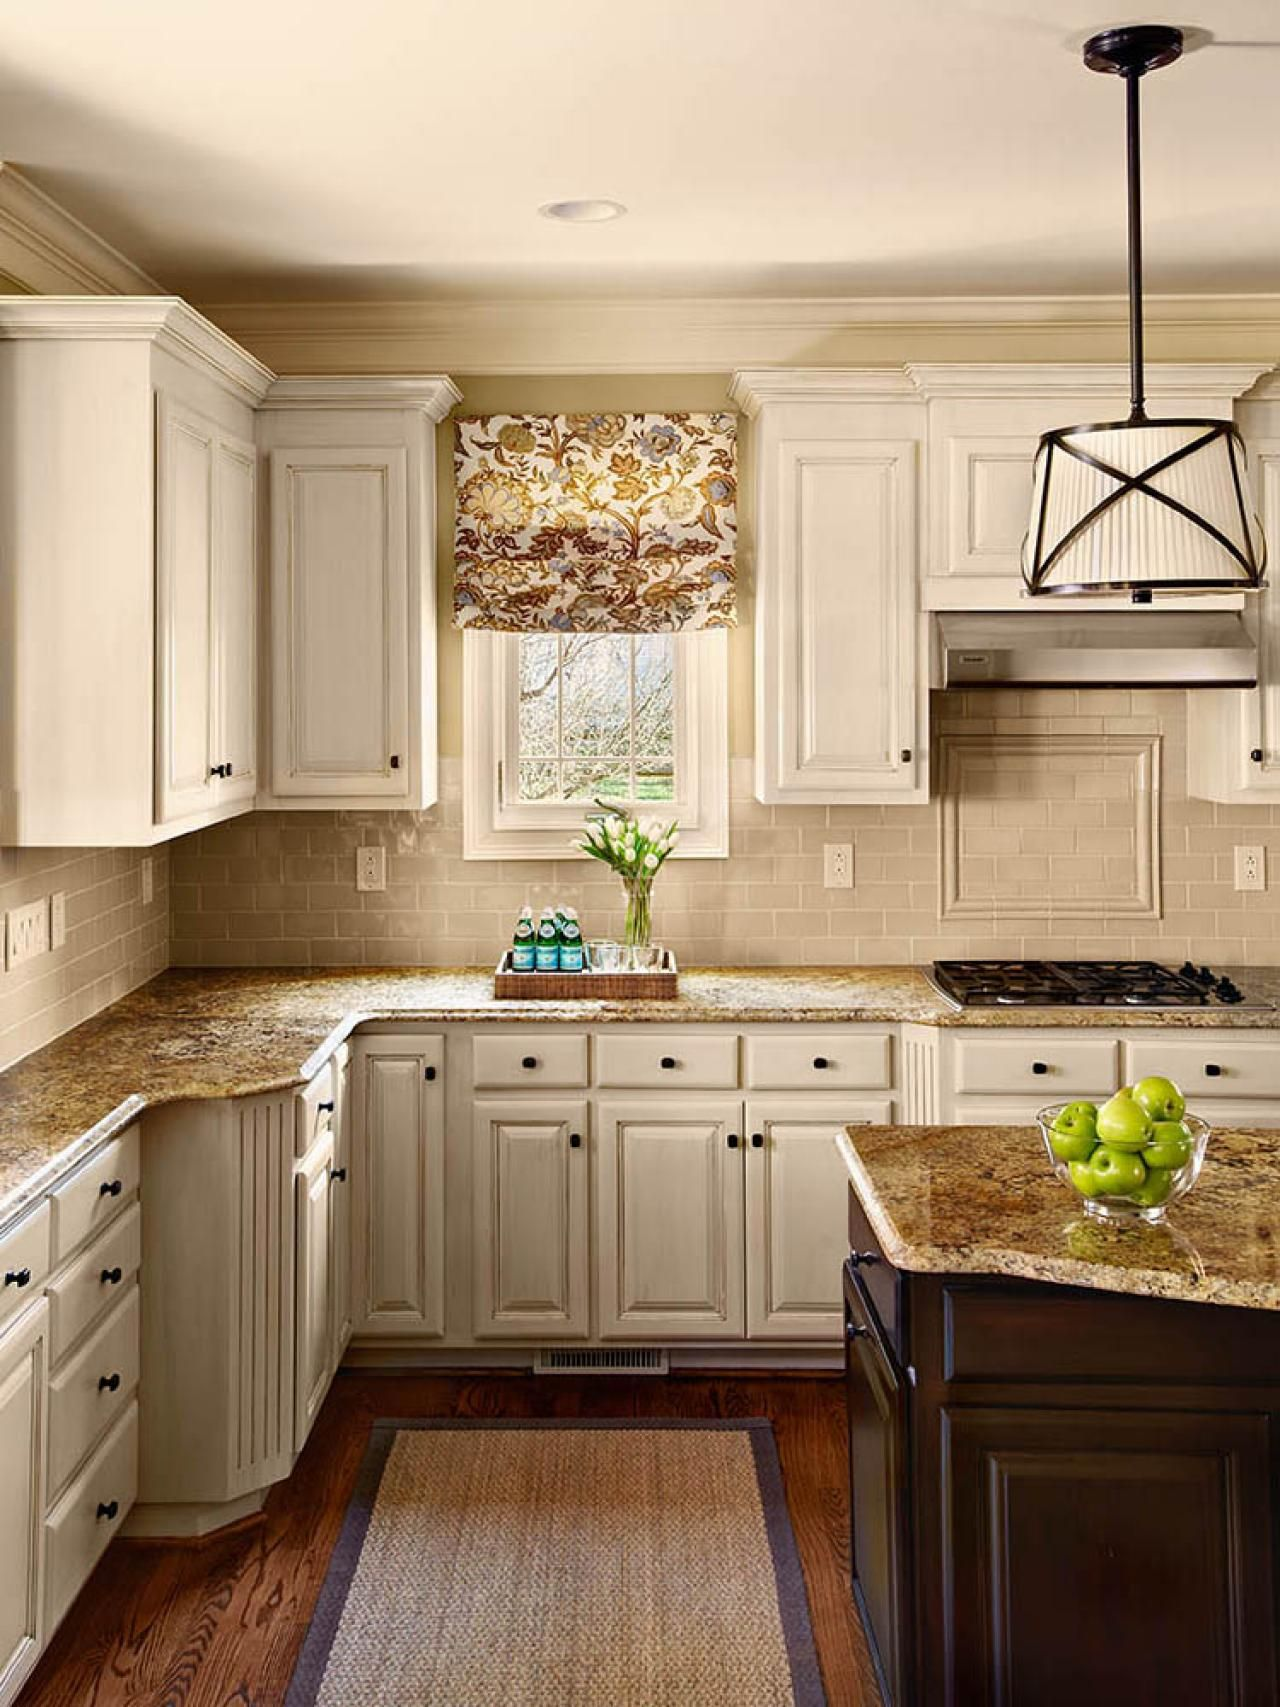 Resurfacing Kitchen Cabinets Pictures Ideas From Kitchen